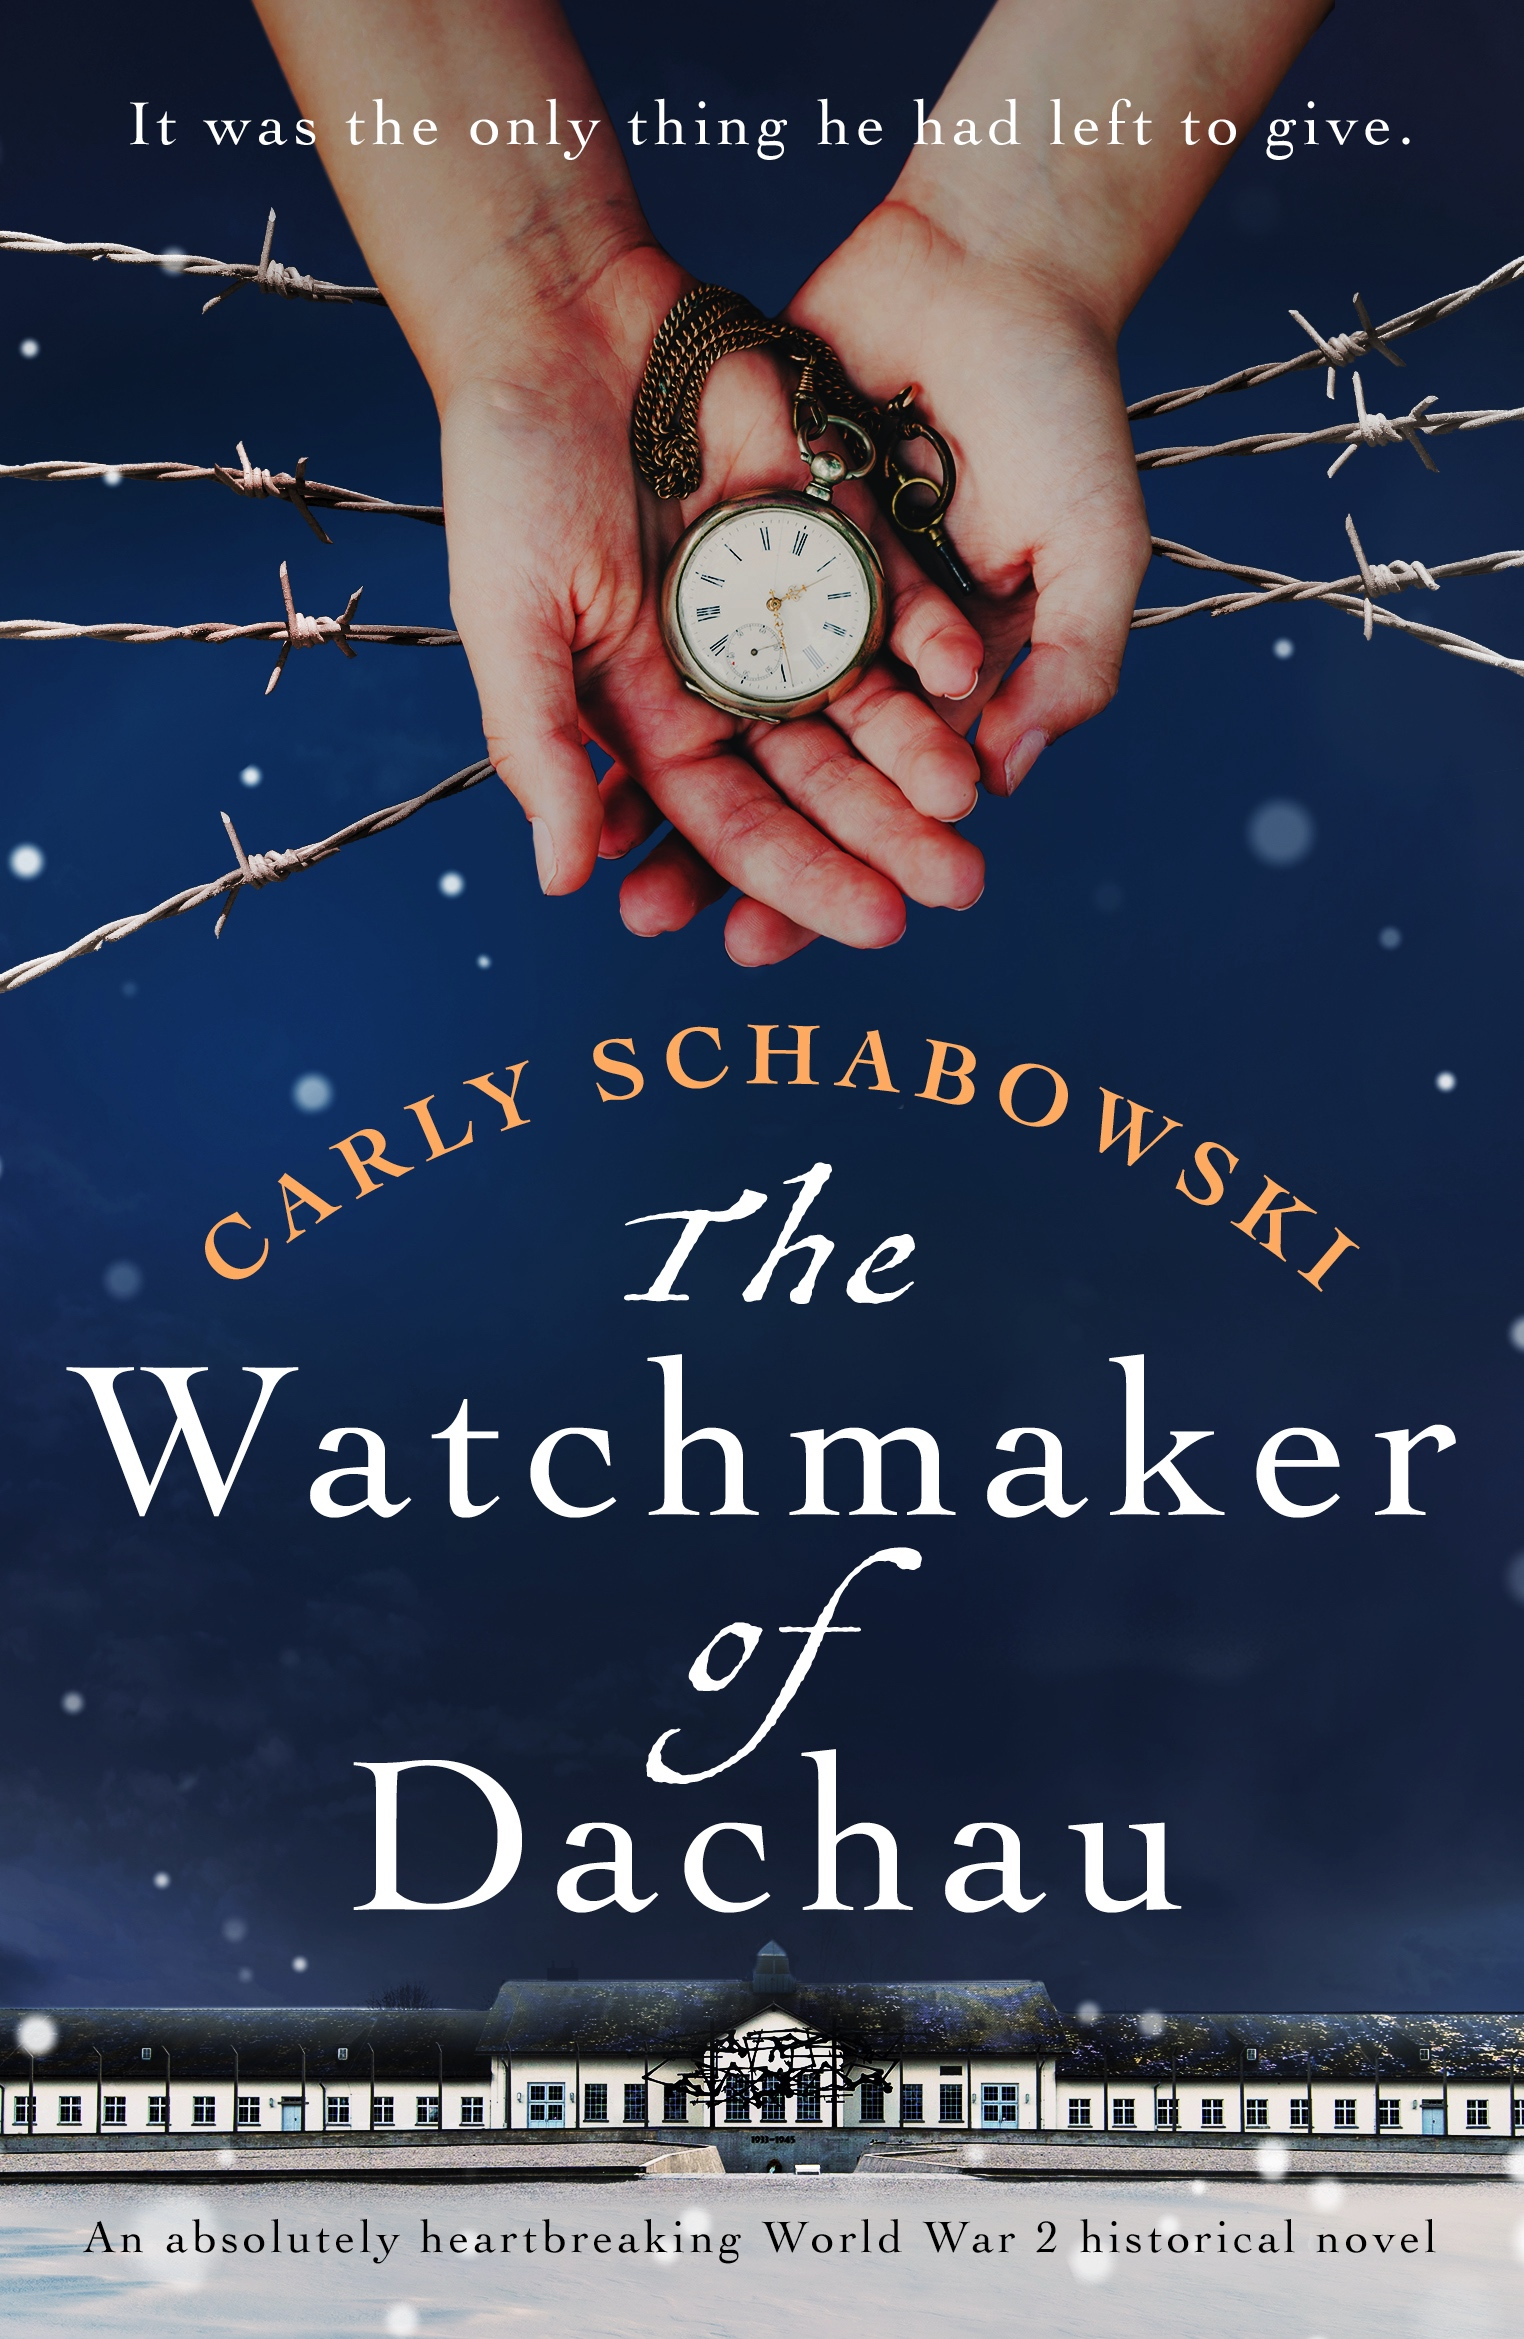 The Watchmaker of Dachau book cover